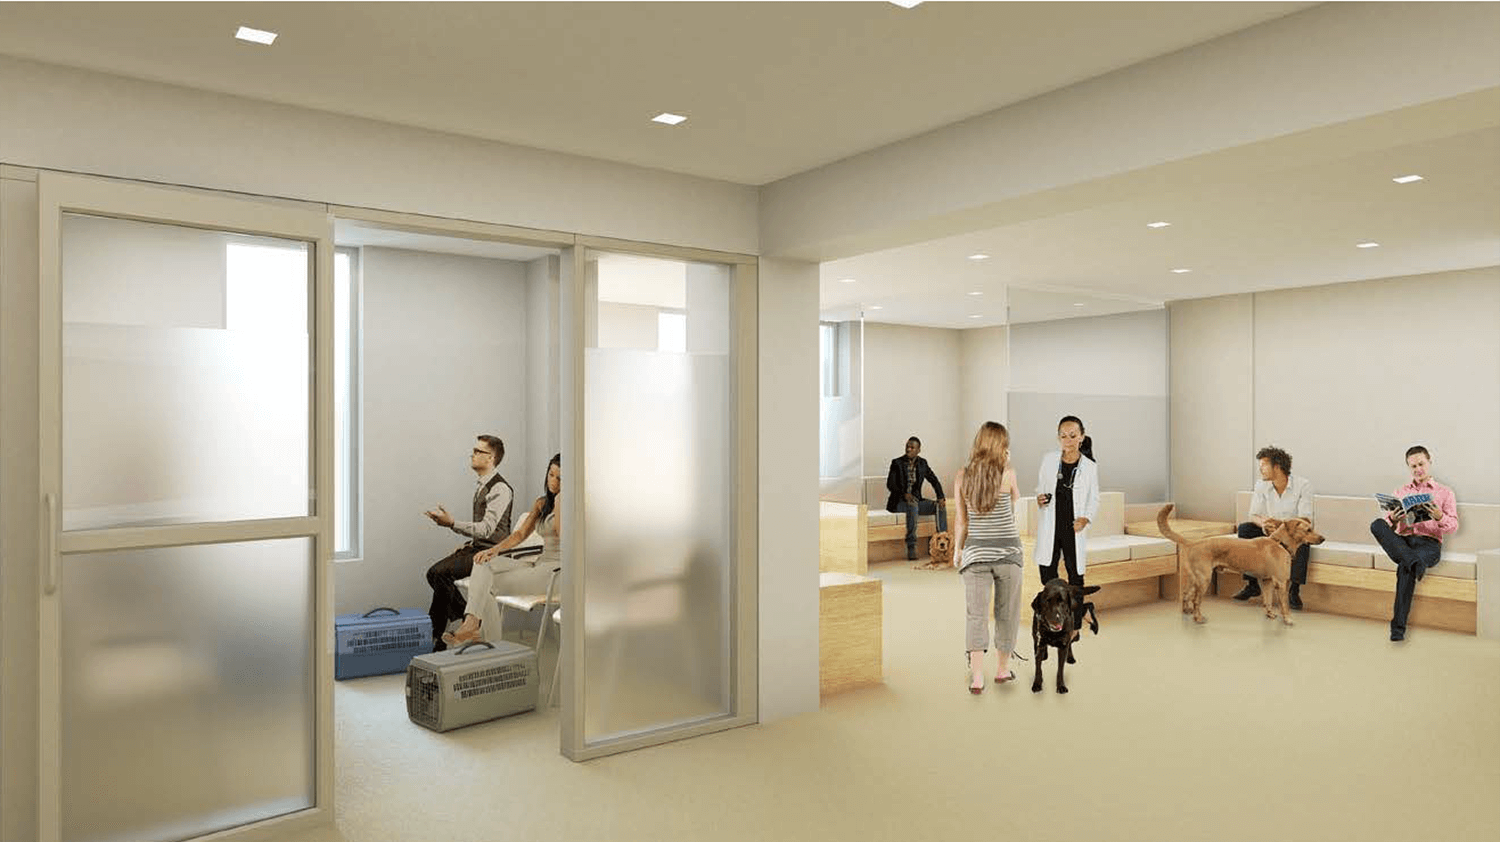 Future Reception Area for Penn Vet Emergency Service